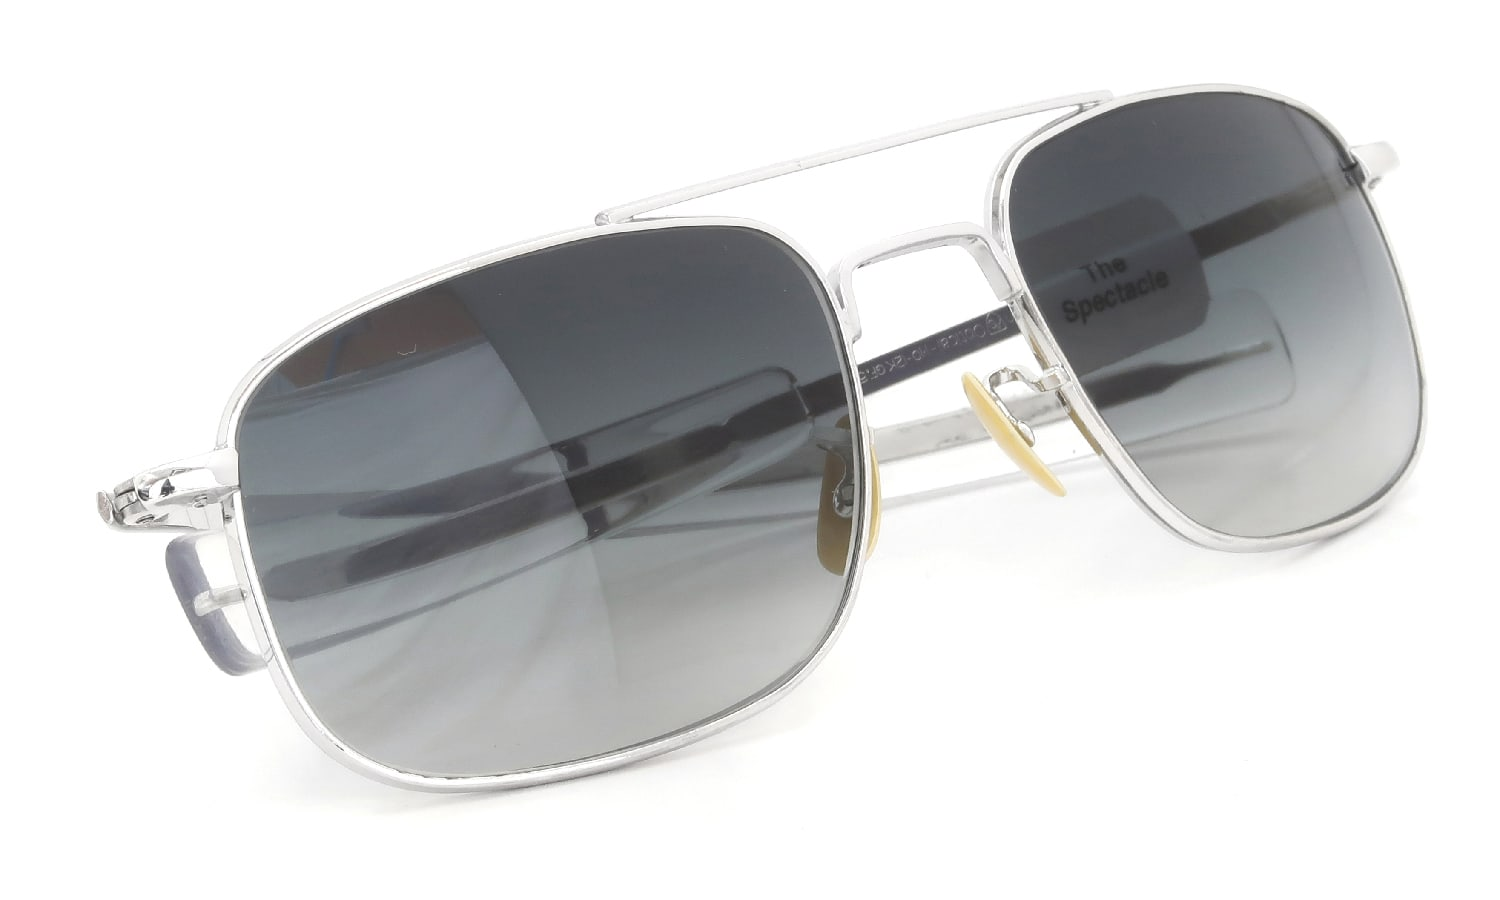 American Optical 1950s〜1960s Mid-Century Modern-Pilot Lewis WG Gry-GRD-Lens